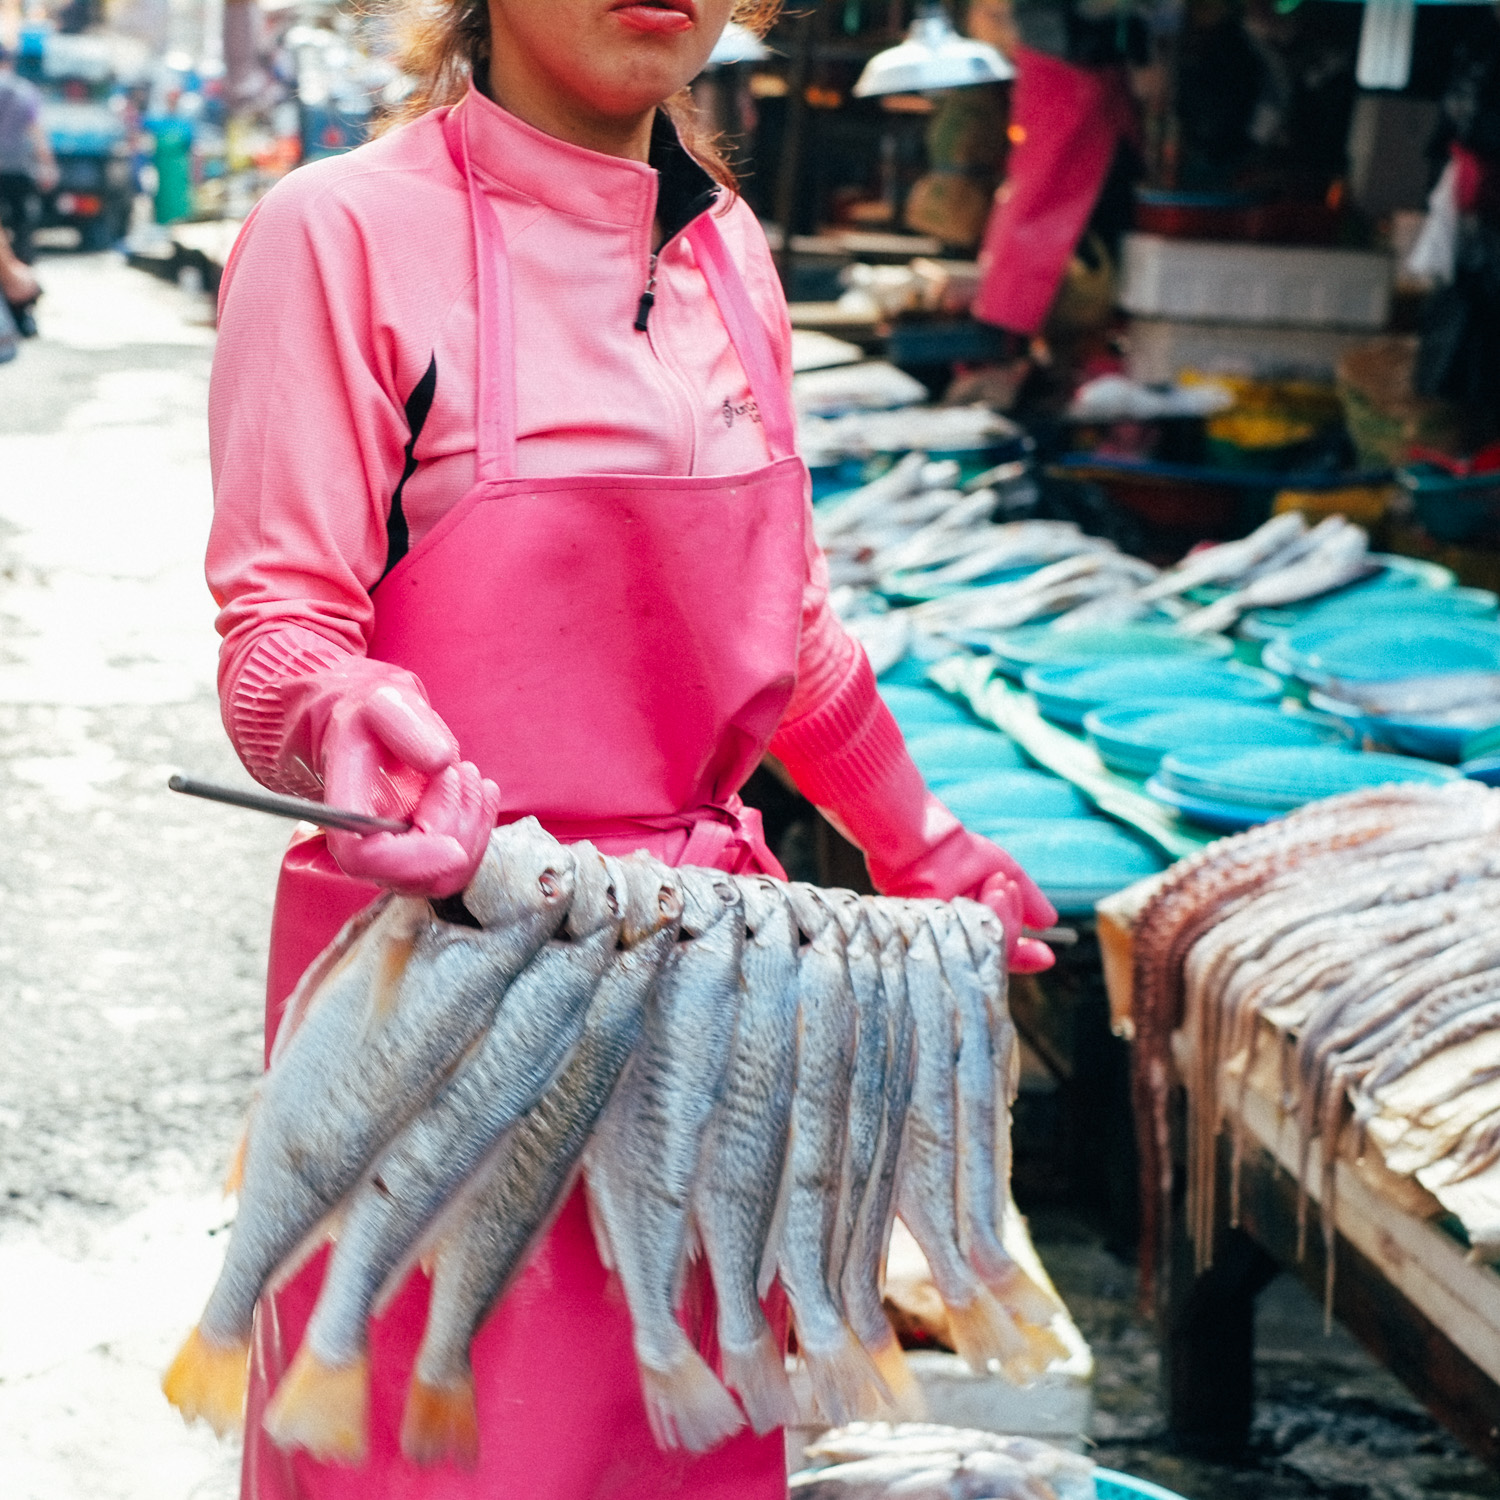 Carina Sze Lau travel- Lady in pink at Jagalchi Market, Korea